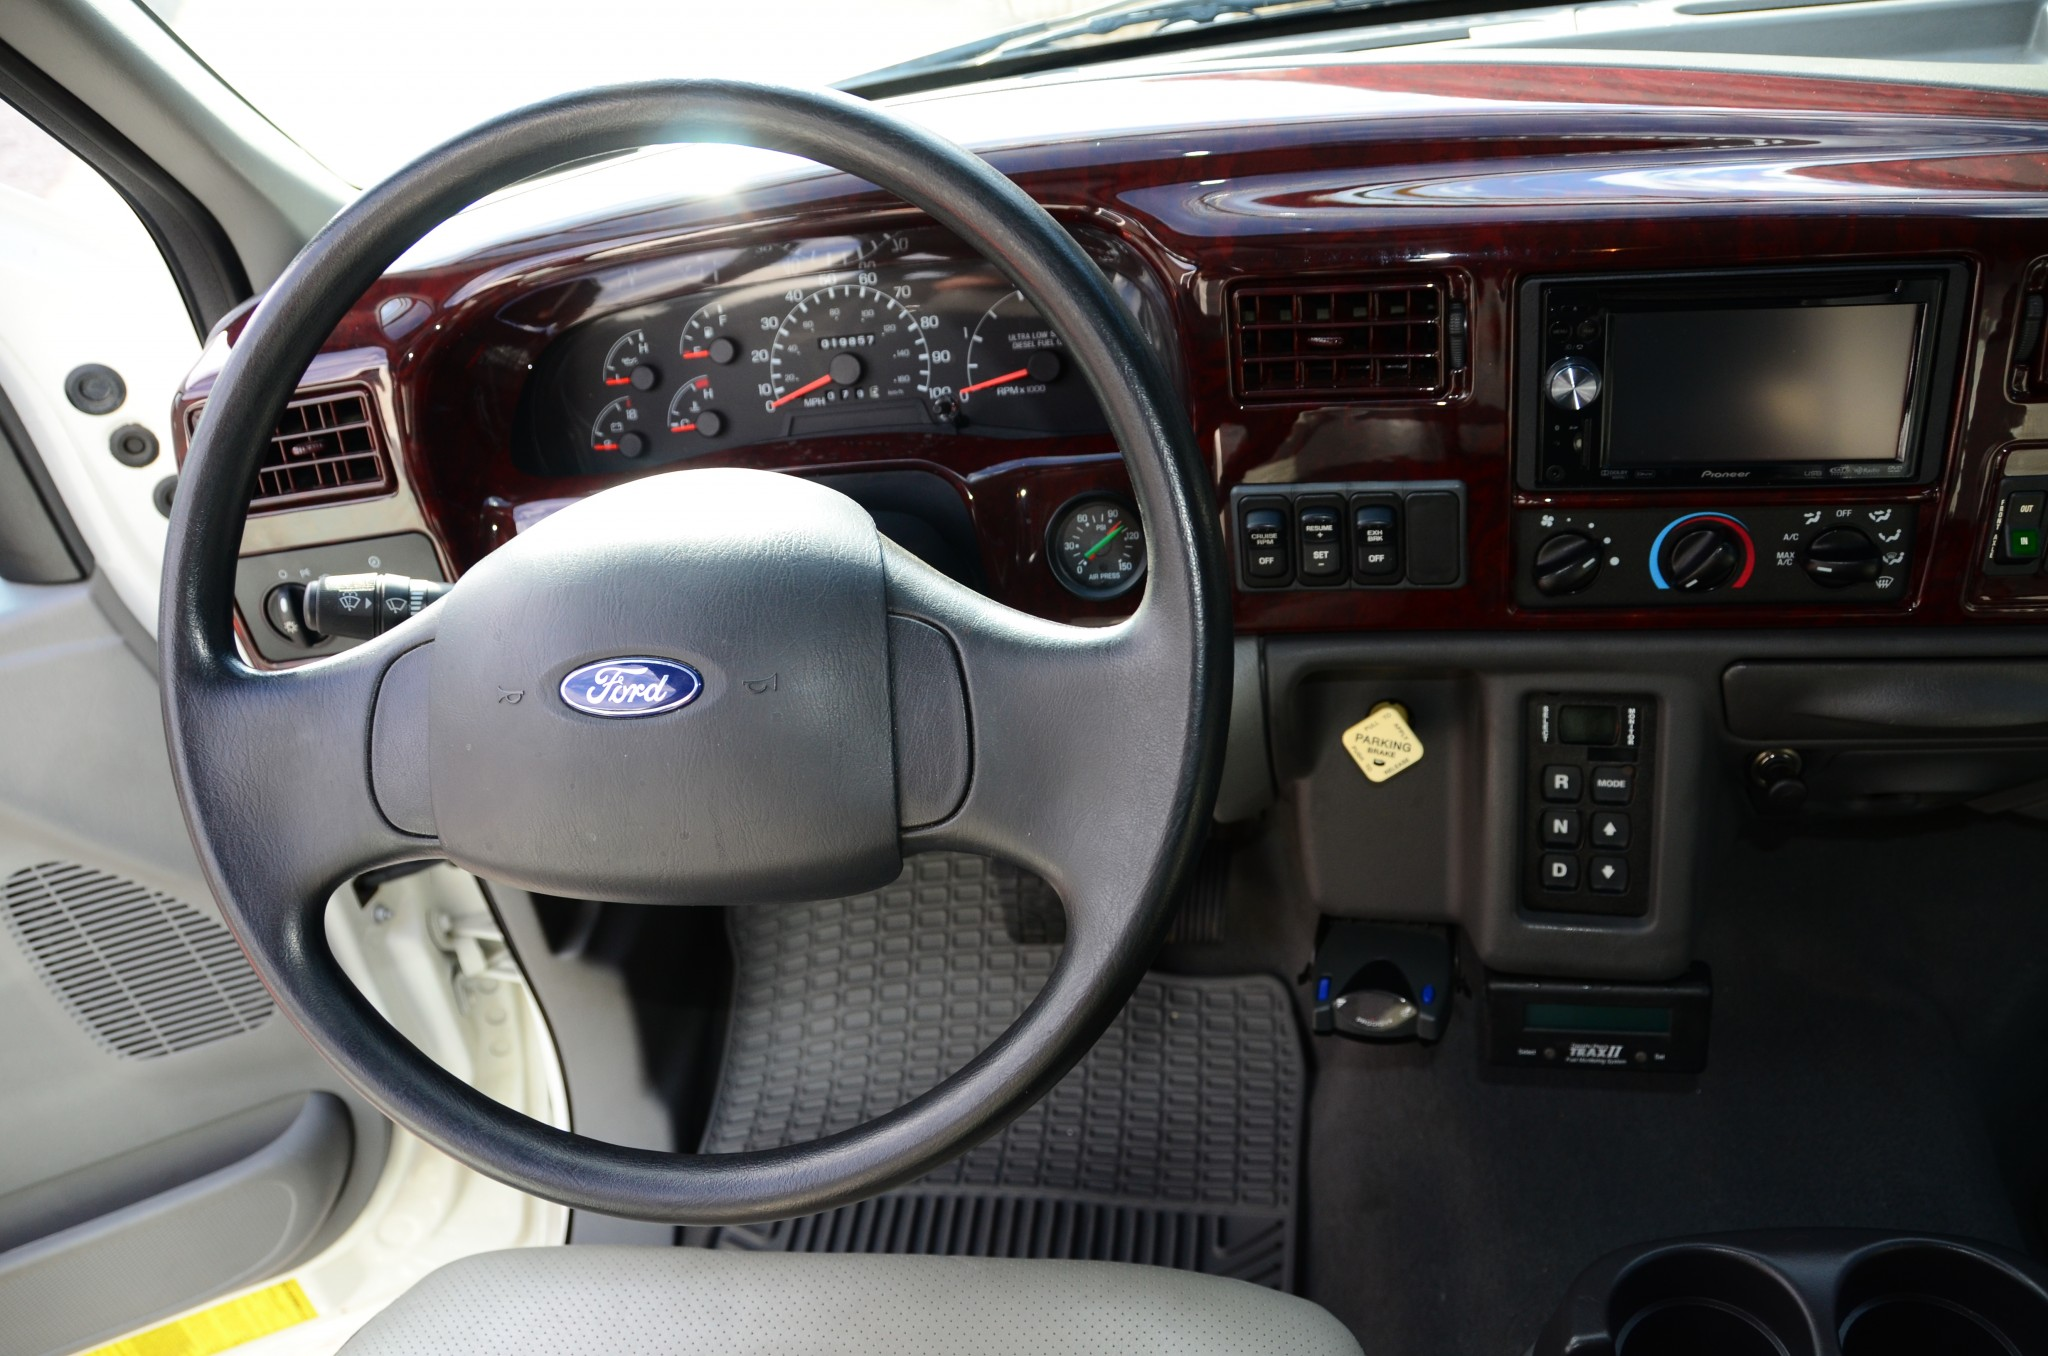 A wood-grain dash is not what you'd expect in a utility rig.